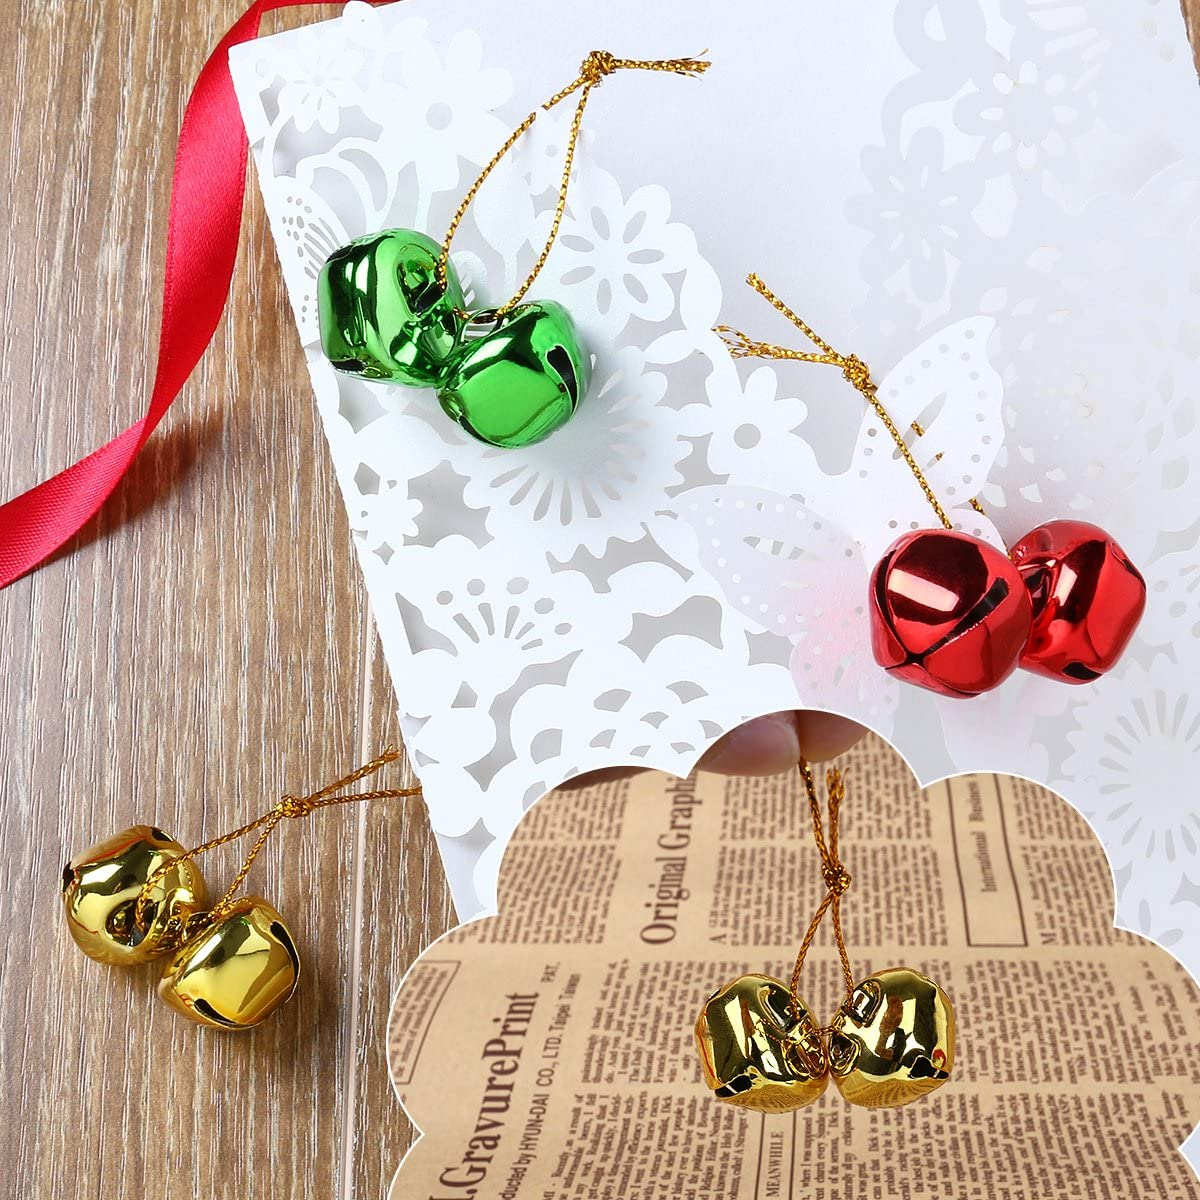 Christmas Jingle Bells, Crafts Small Christmas Bells Mini Jingle Bells for Christmas 150 PCS